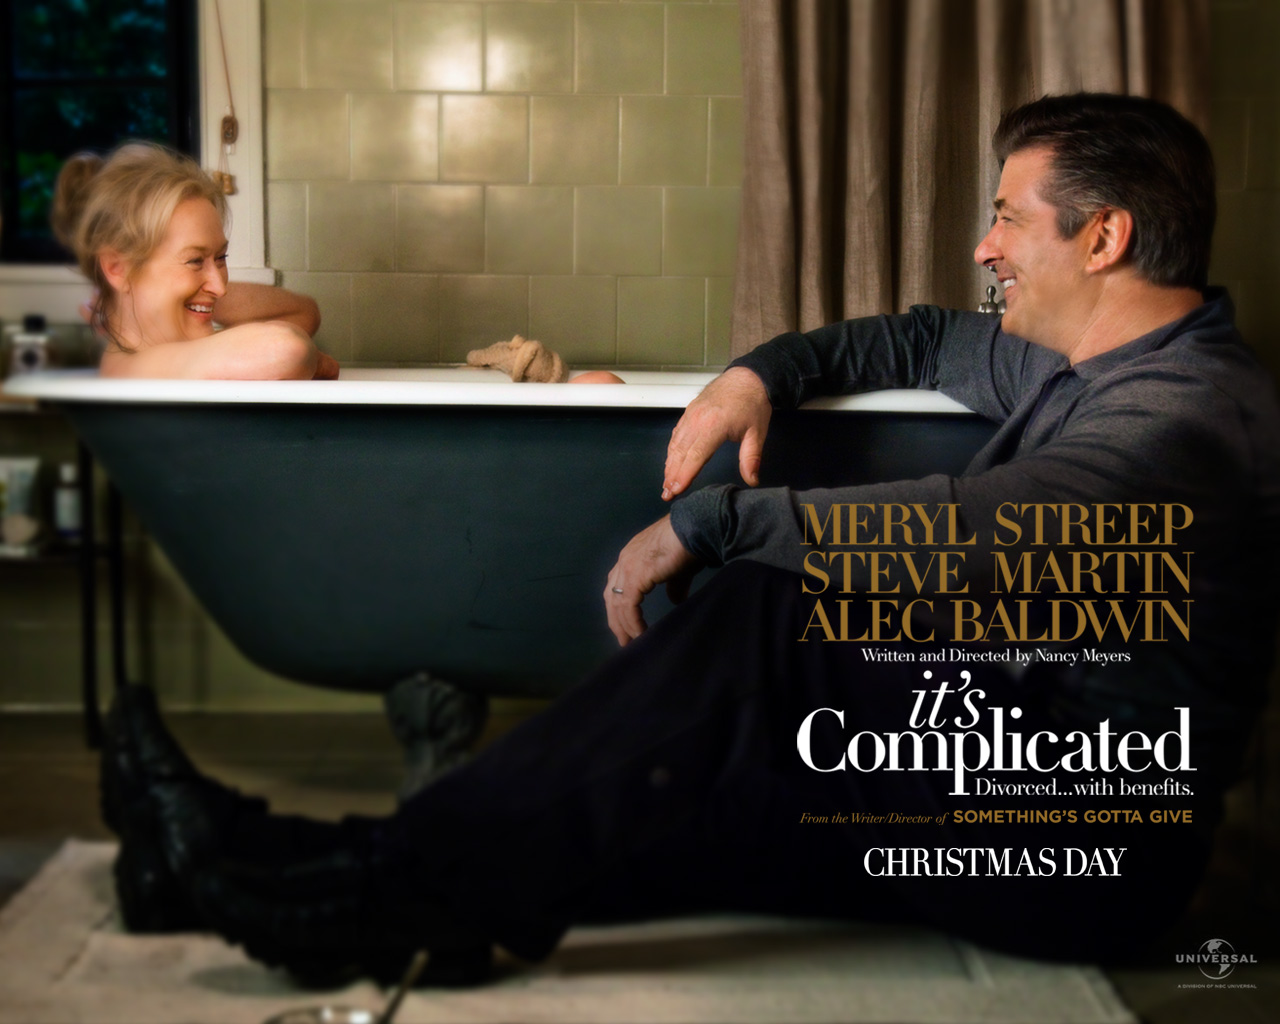 http://3.bp.blogspot.com/_svkIkX_aV1c/S8A_Zmu6BII/AAAAAAAACzI/mS1wRmWugks/s1600/Meryl_Streep_in_Its_Complicated_Wallpaper_4_800.jpg